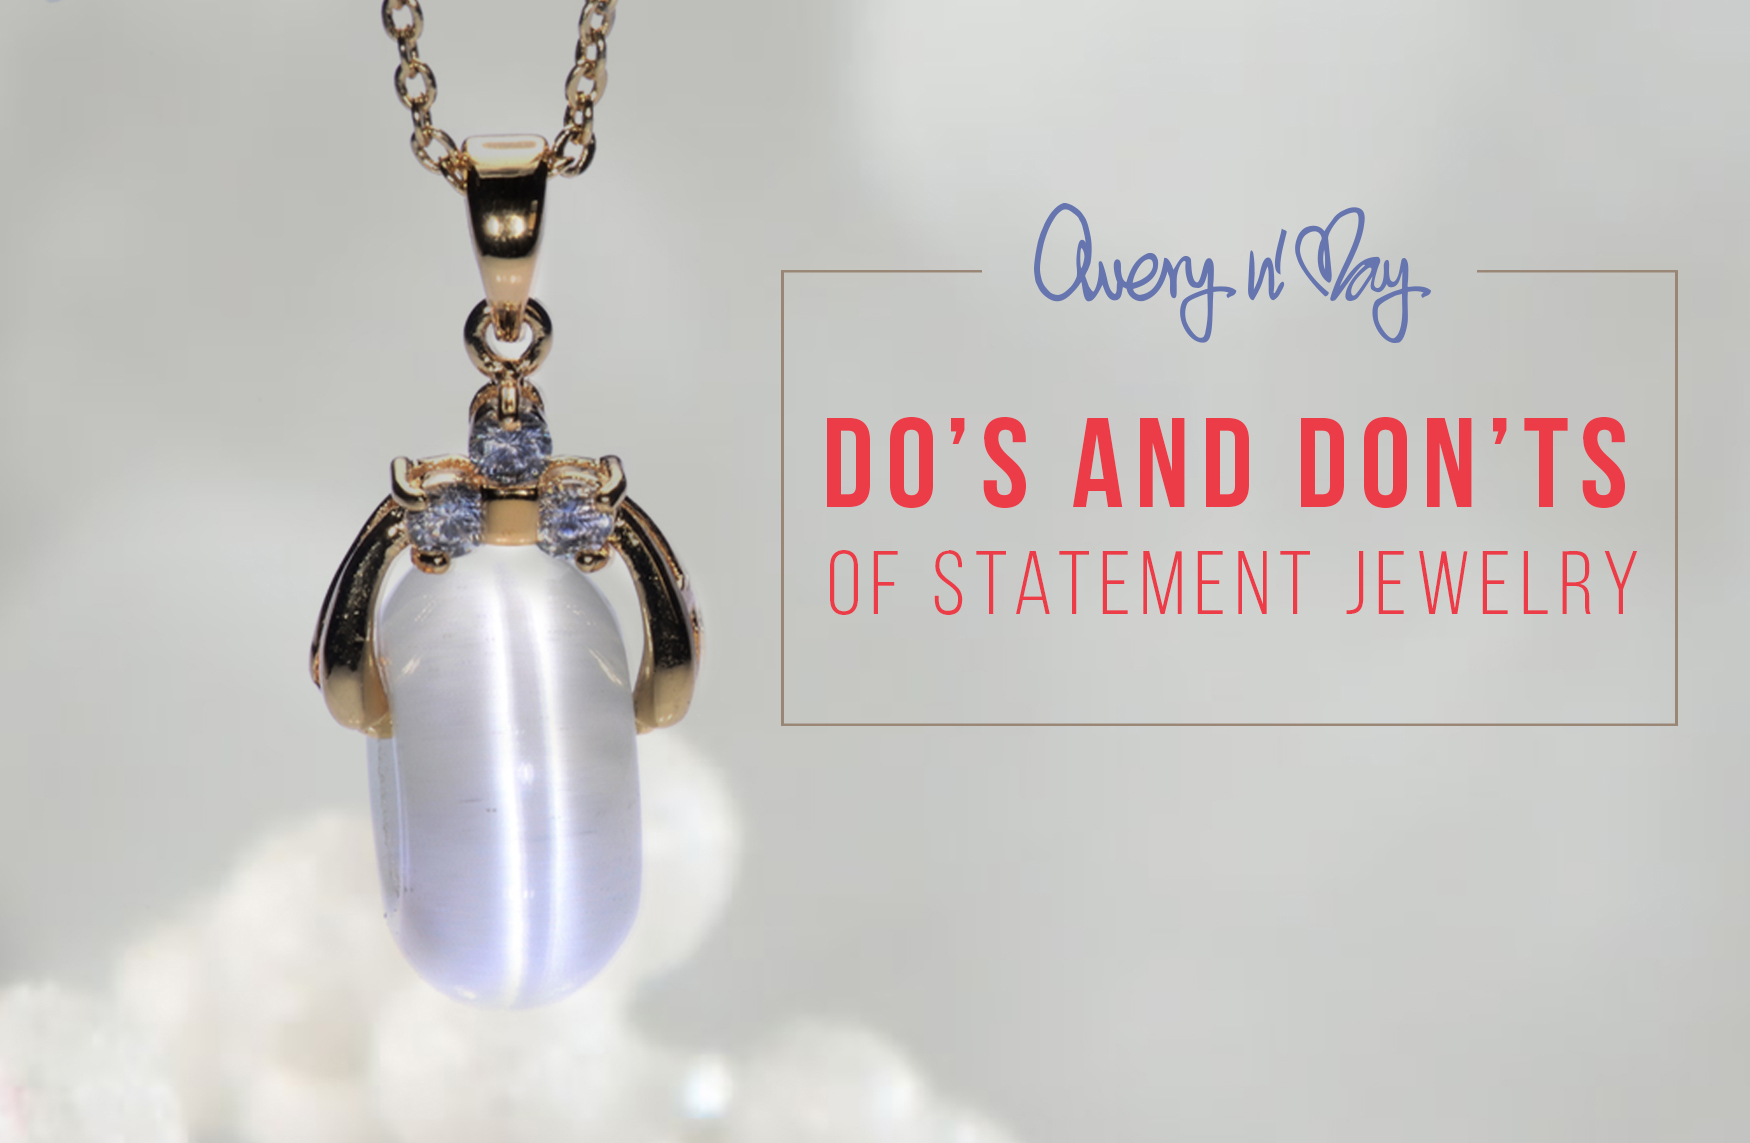 Do's and Don'ts of statement jewelry